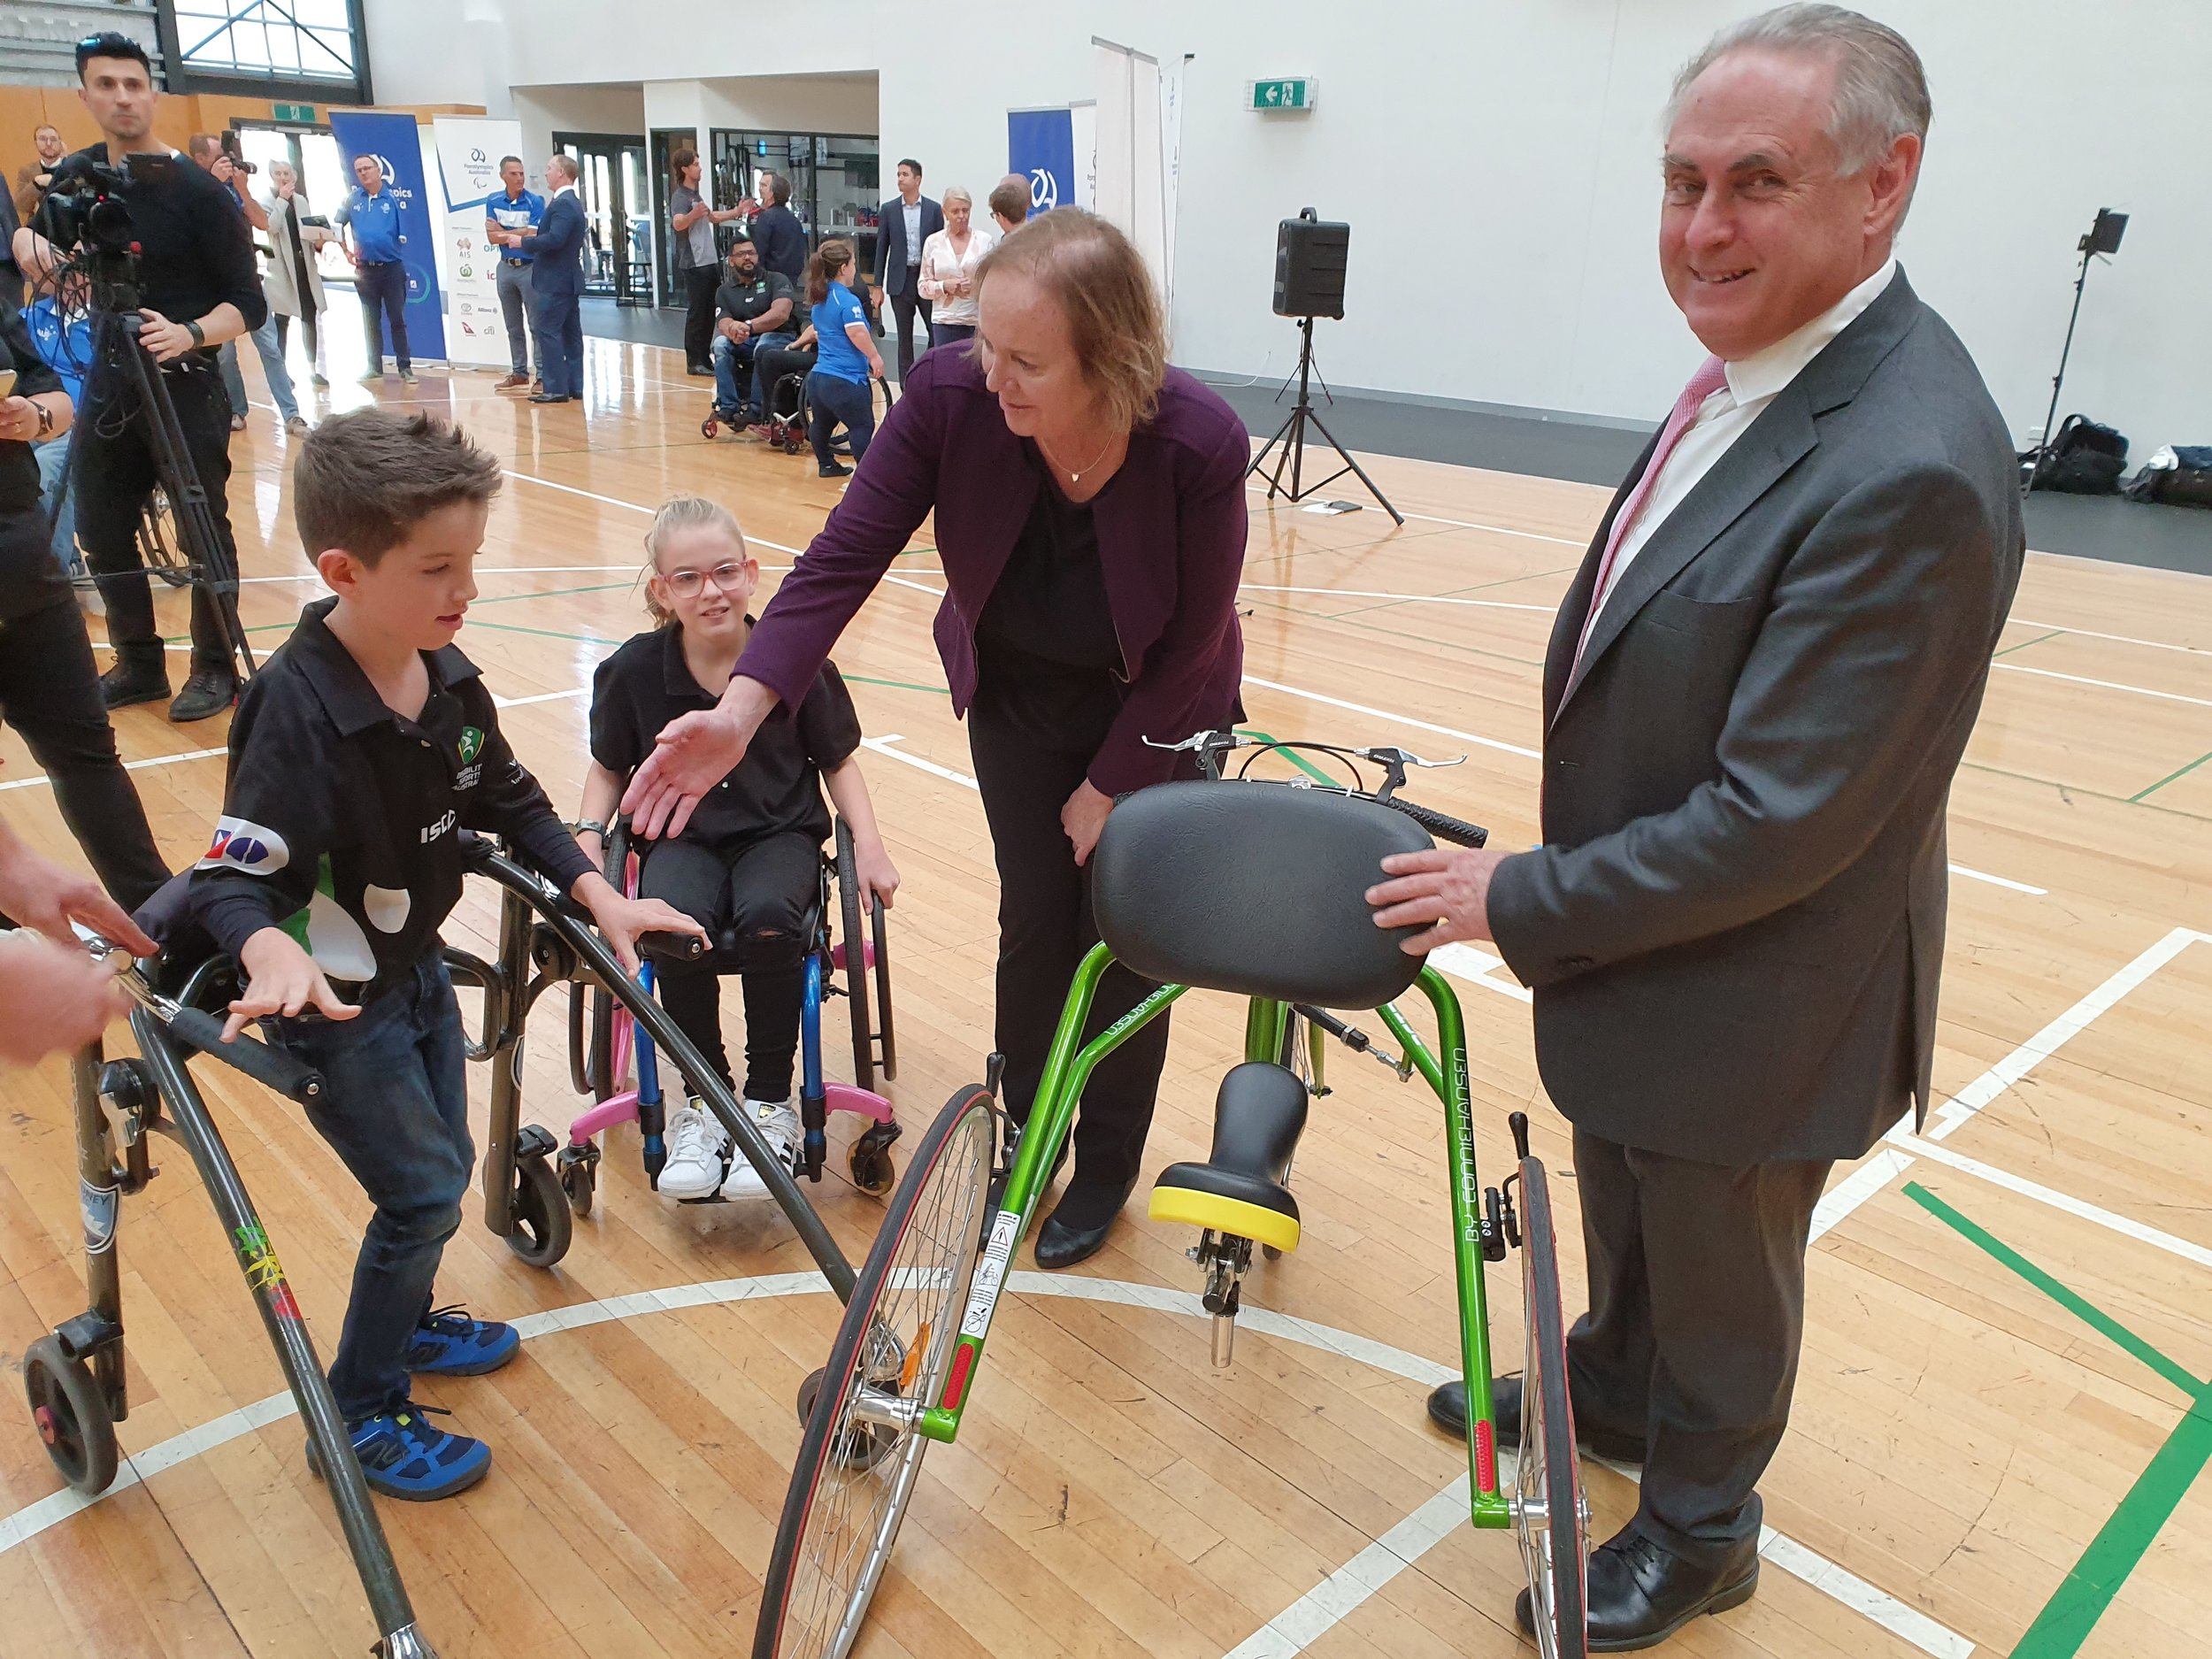 Senator Carol Brown (Shadow Minister for Disability & Carers) and Senator the Hon Don Farrell (Shadow Minister for Sport) meeting RaceRunning athlete, Mr Arran Keith and DSA Youth Ambassador, Miss Emily Prior on Tuesday, 14 May at the announcement.